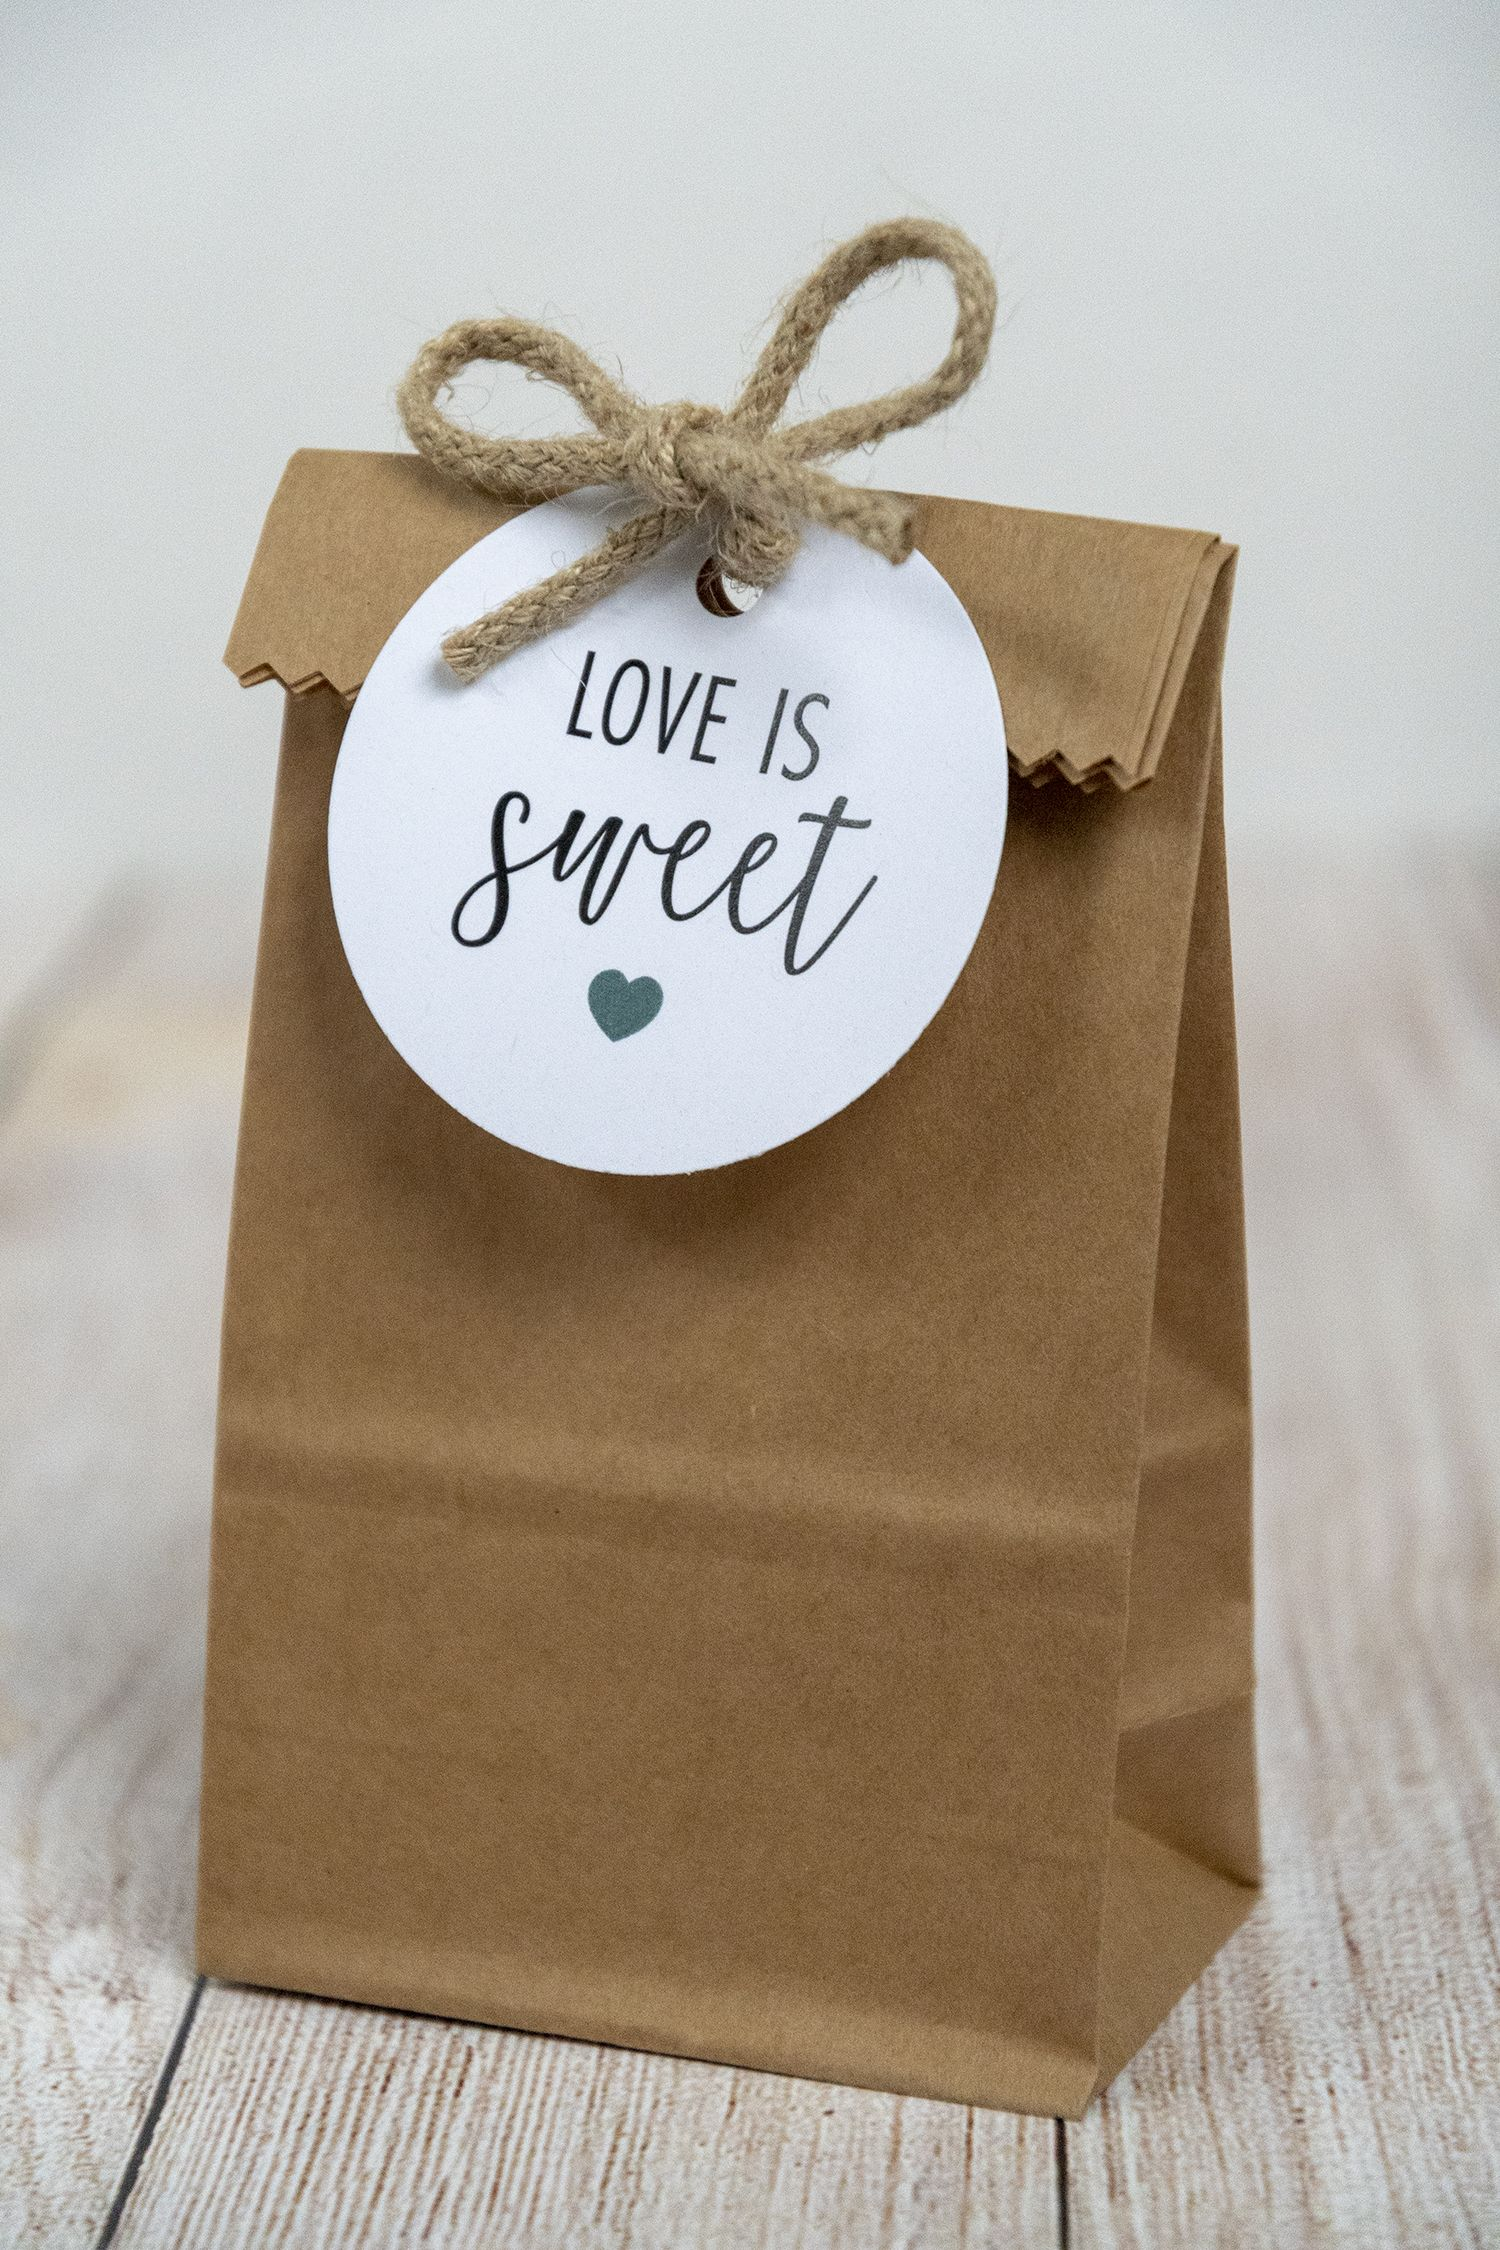 Love is Sweet Wedding Favor Tags FREE Printable. Gift tags for your wedding or bridal shower favors. A great idea for wrapping cookies, candy bags, chocolate, or cupcakes. #loveissweet #weddingfavorideas #chocolateweddingfavors #bridalshowerfavorideas